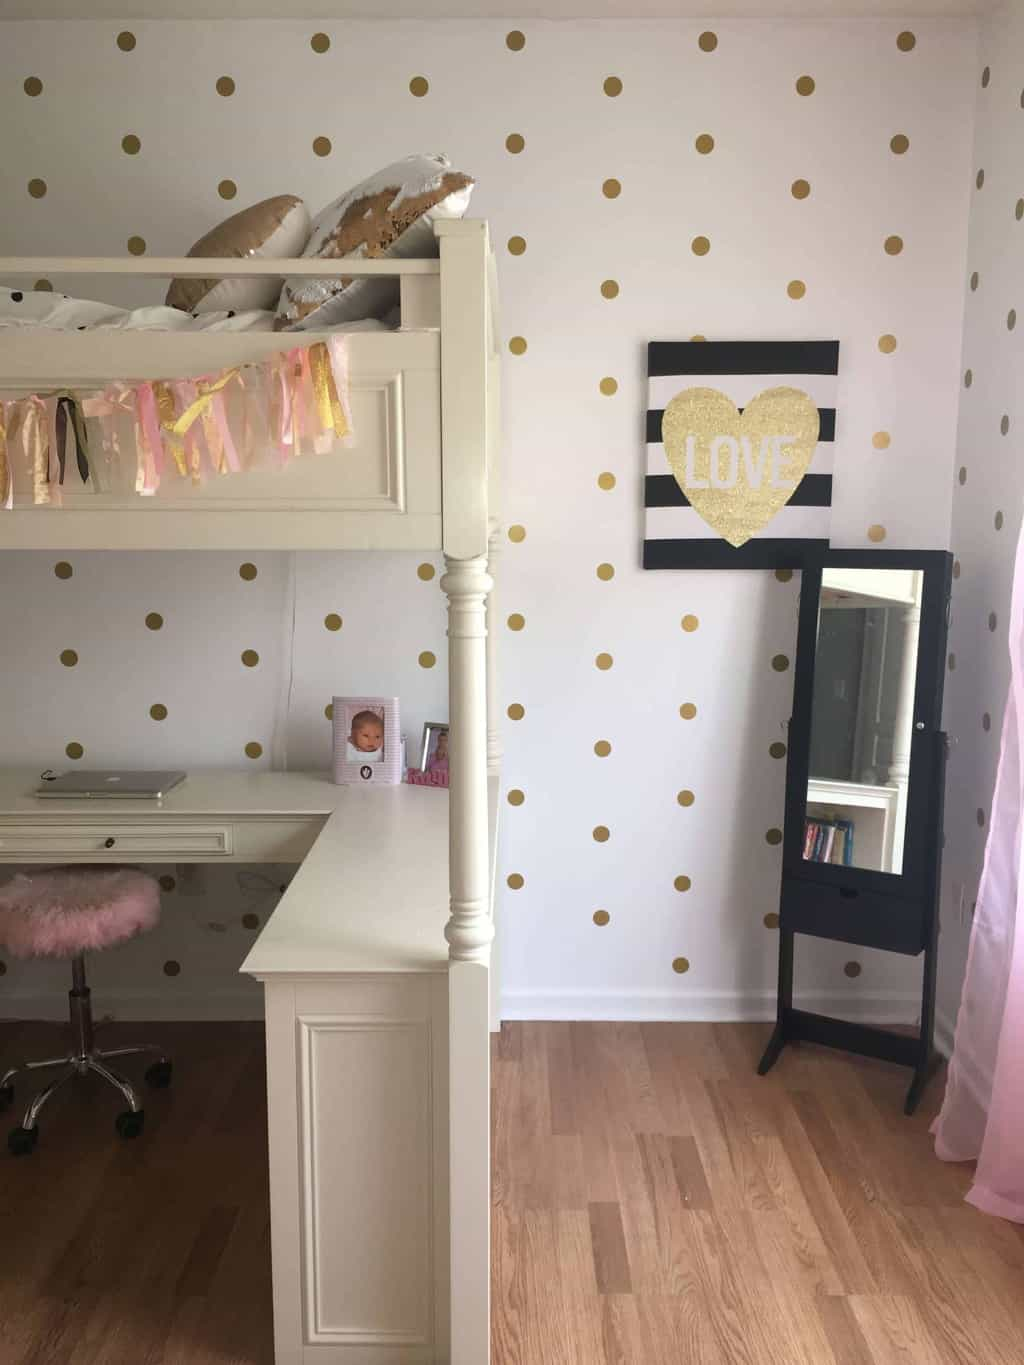 How to hang polka dot wall decals